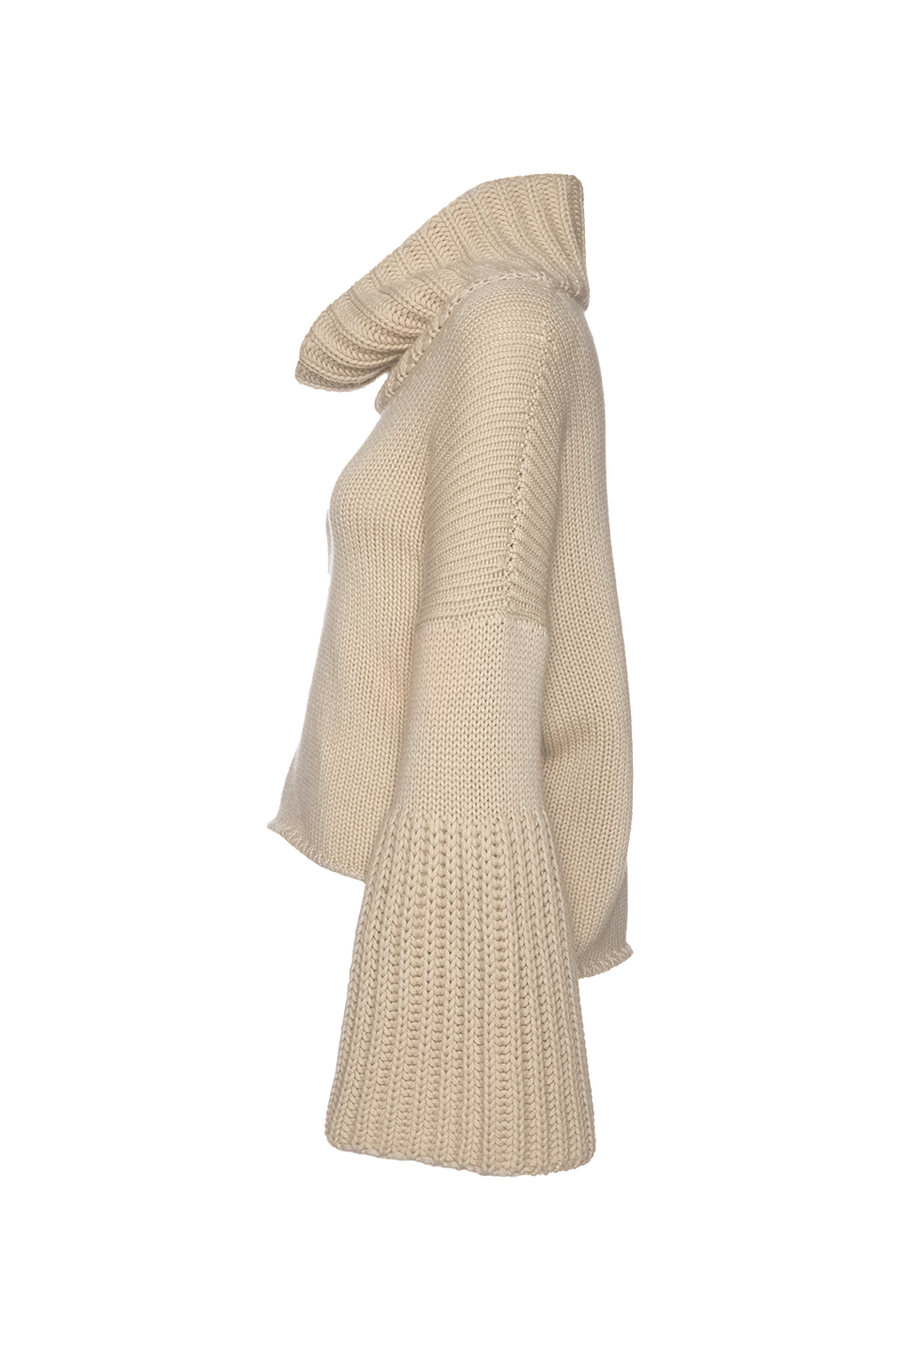 THE COURCHEVEL CASHMERE TURTLE NECK SWEATER